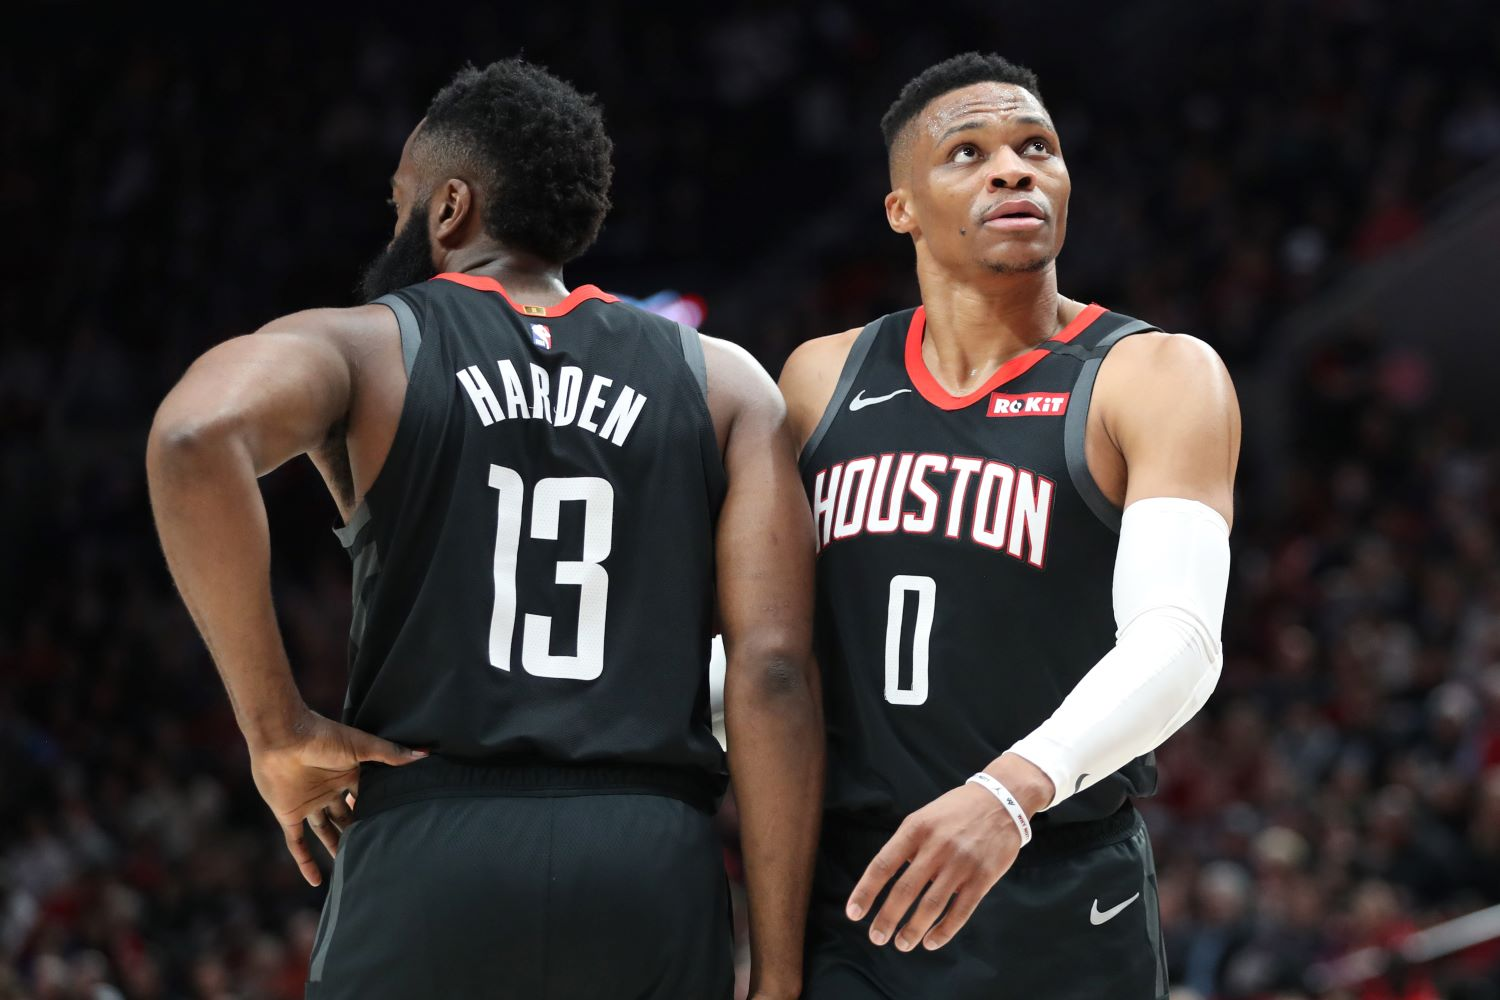 James Harden just cost Russell Westbrook his final chance at an NBA title.